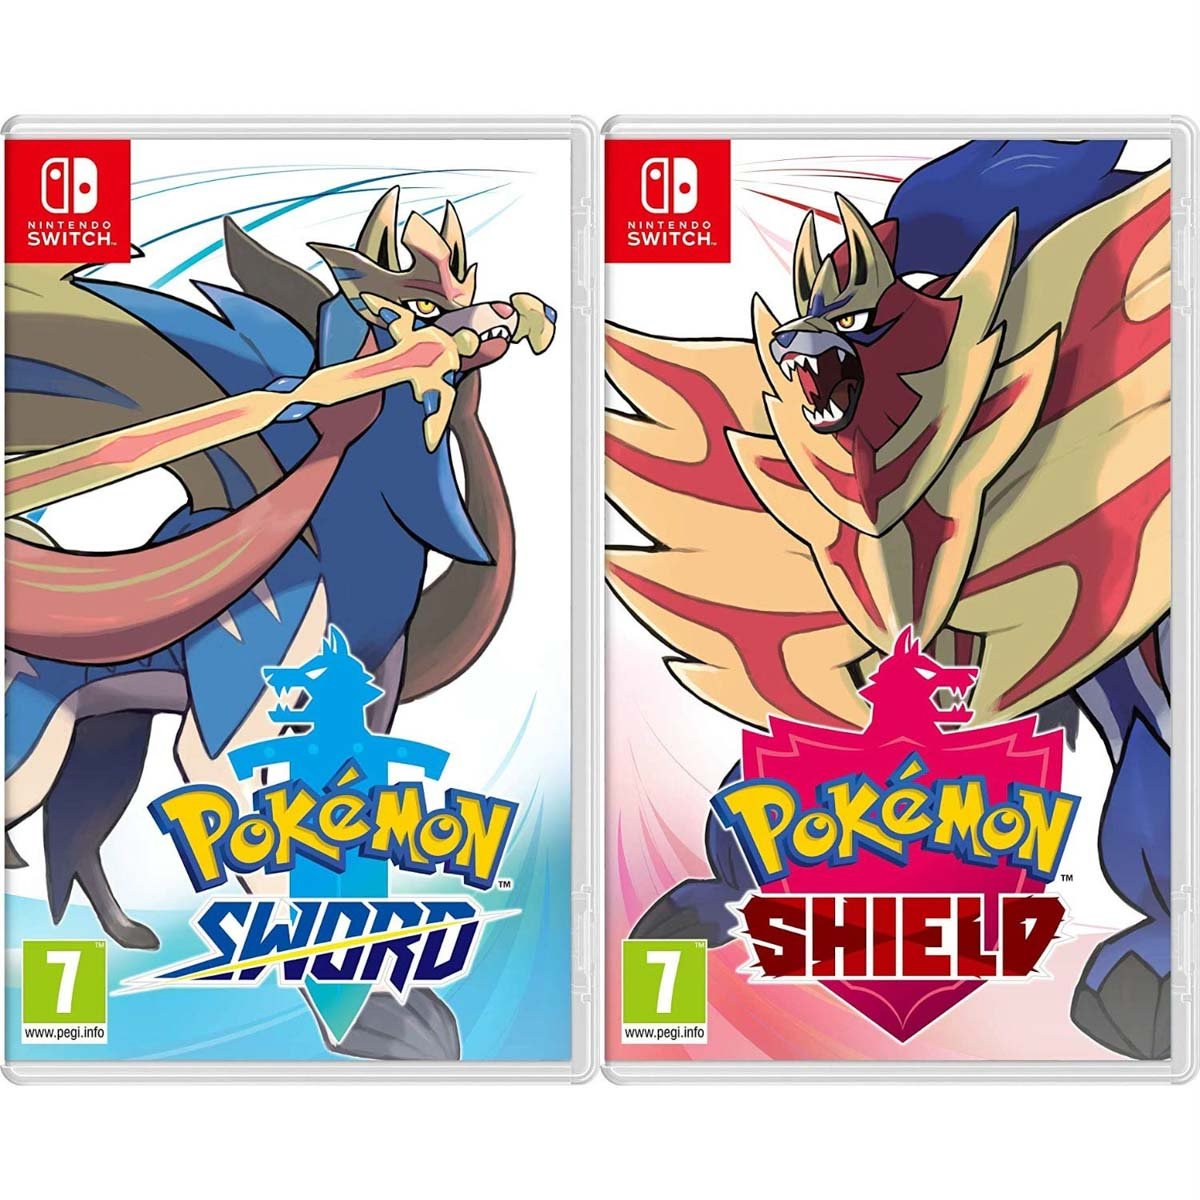 Covers of Pokemon sword & shield nintendo switch games